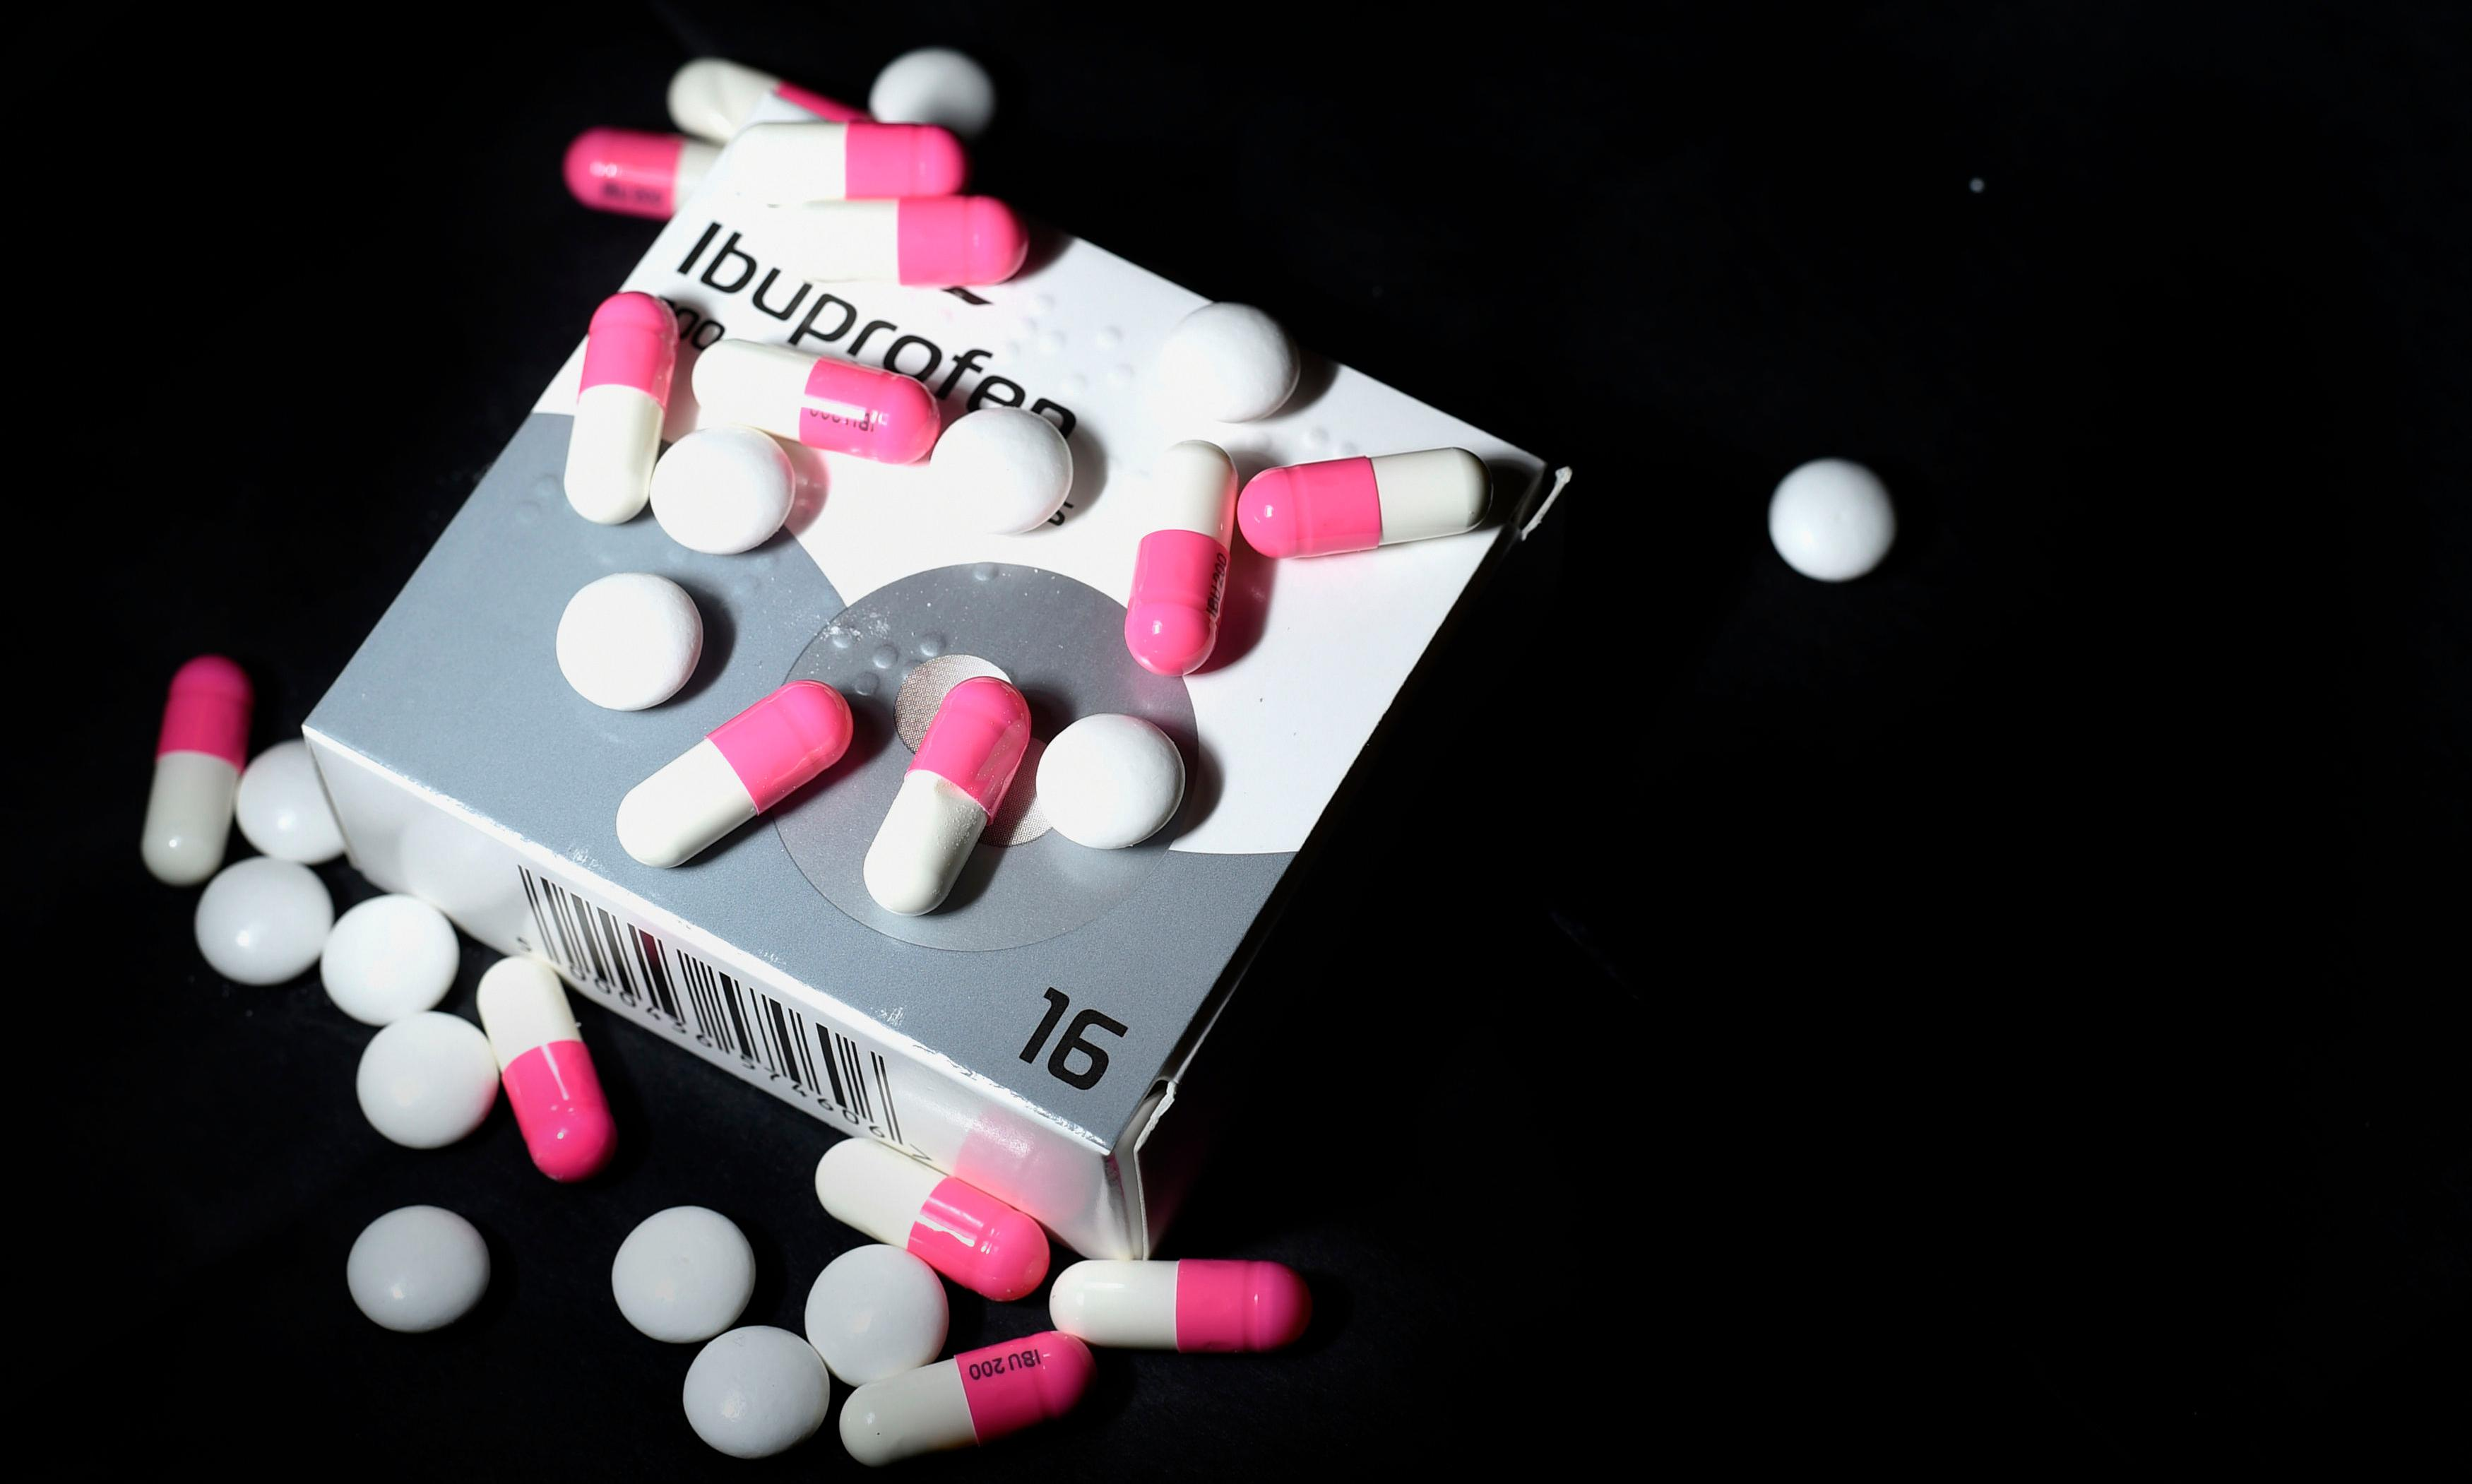 Ibuprofen may increase risk of fertility issues in men, study suggests